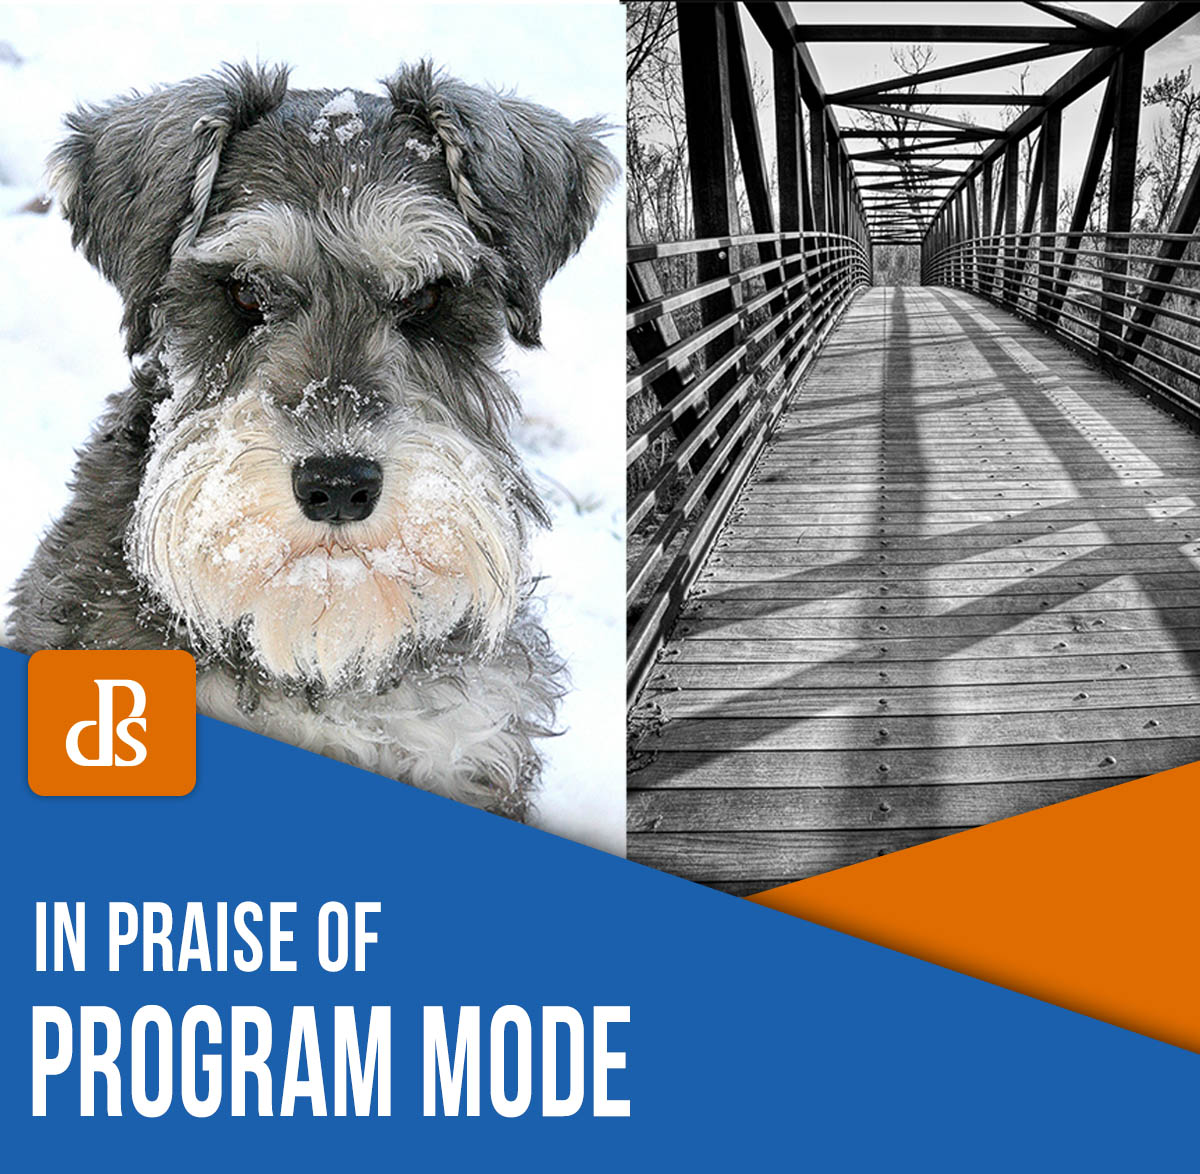 In Praise of Program Mode: Why Program Mode is Great for Beginners